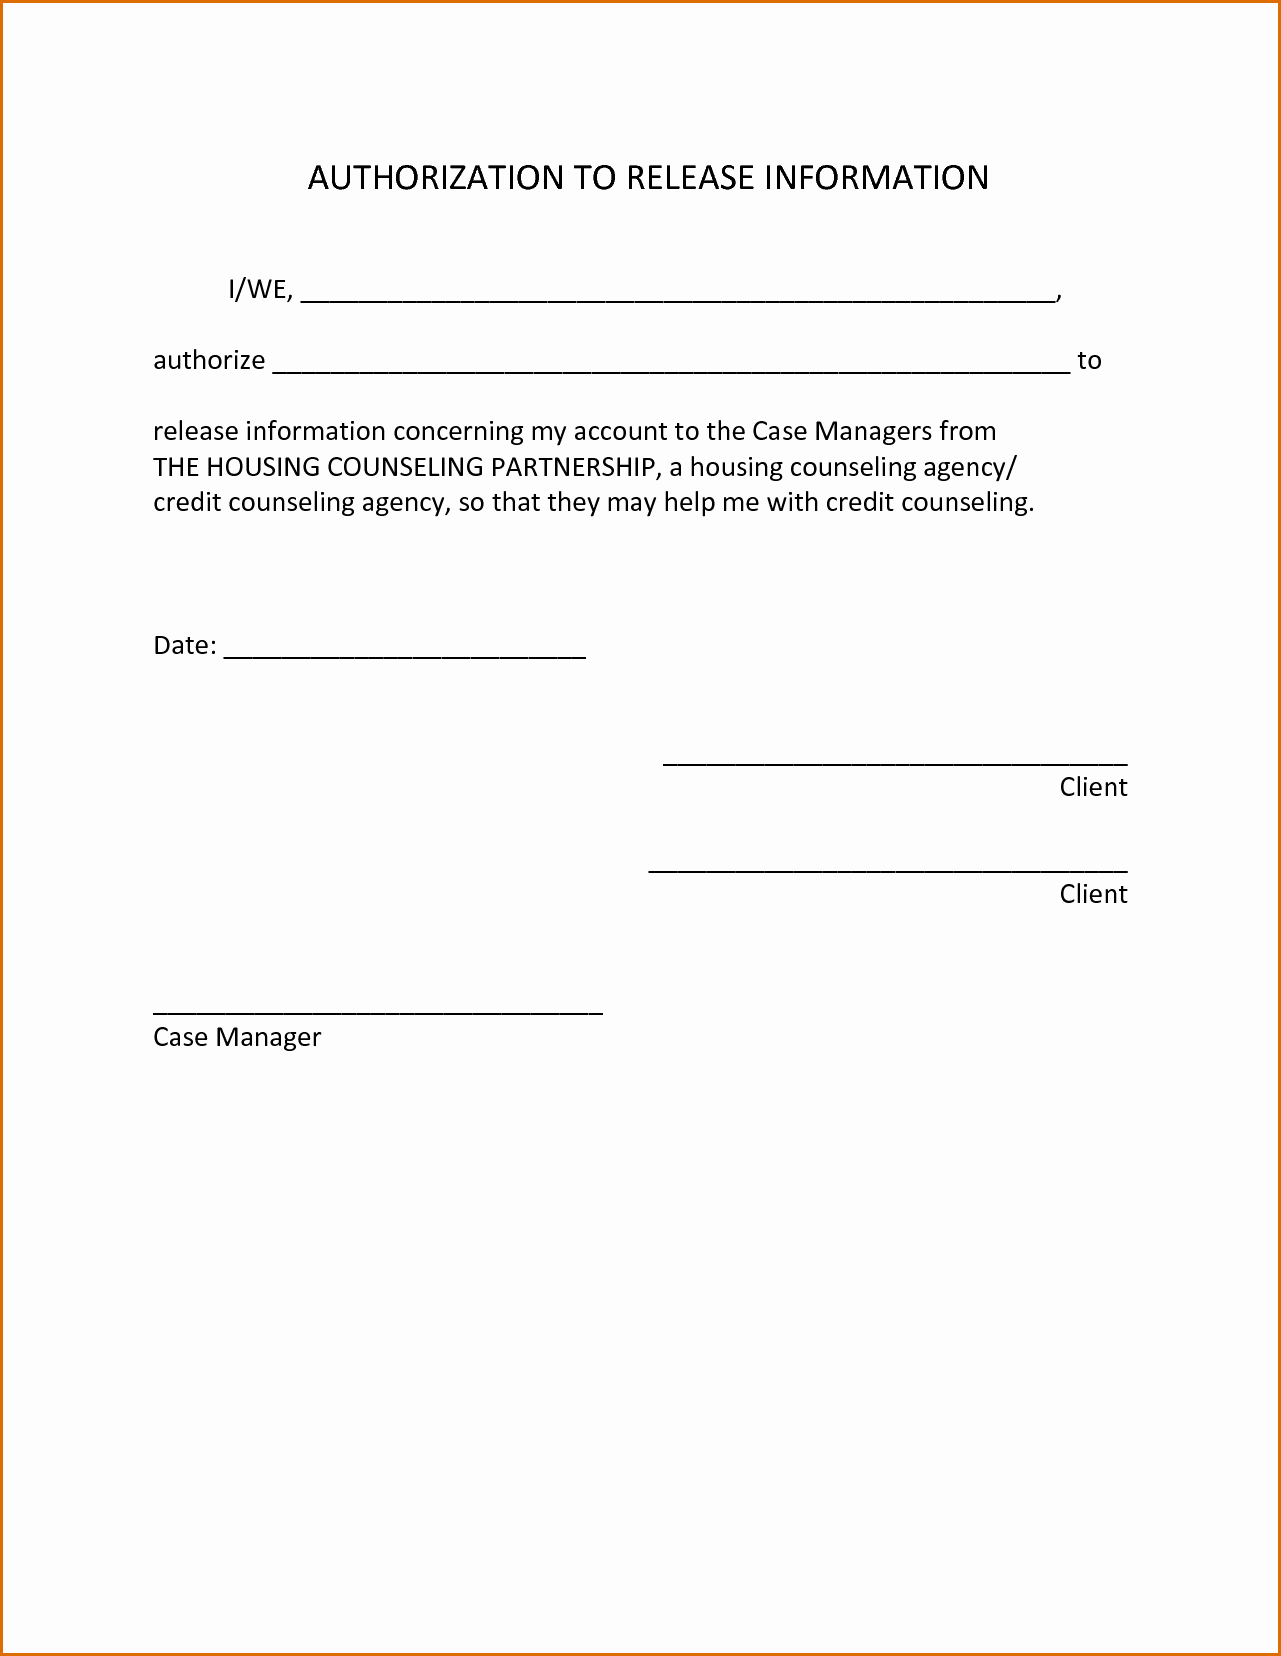 Source Of Funds Letter Template Best Of Authorization to Release Information Template Medical 11